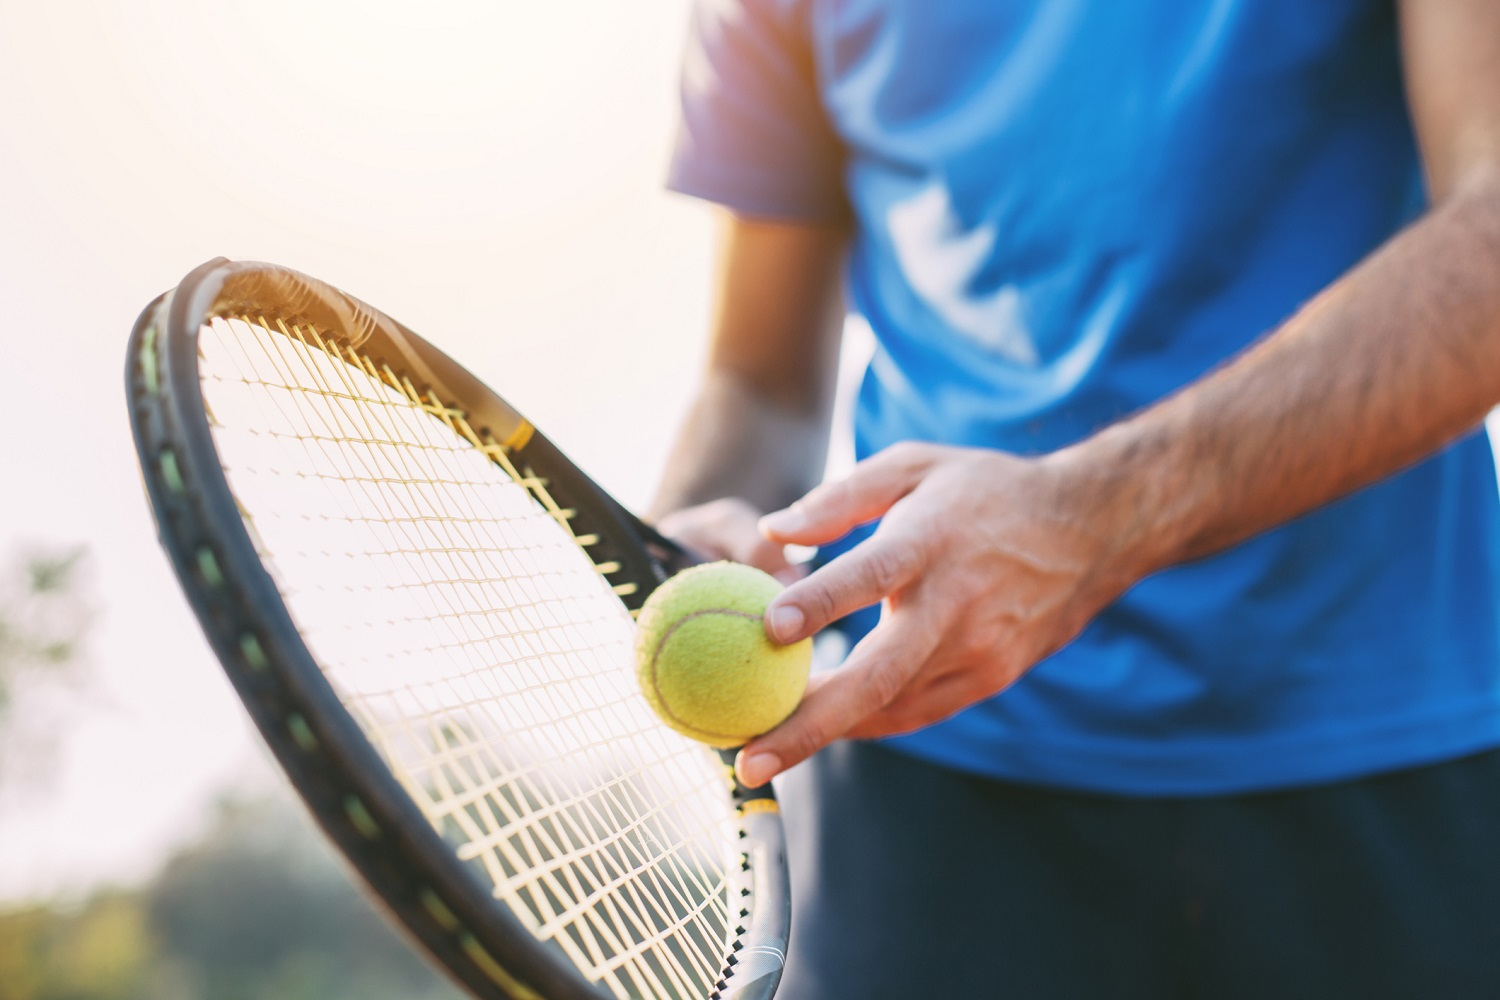 Guy holding tennis racket and ball on clay court. Boy getting ready for a serve in tennis.